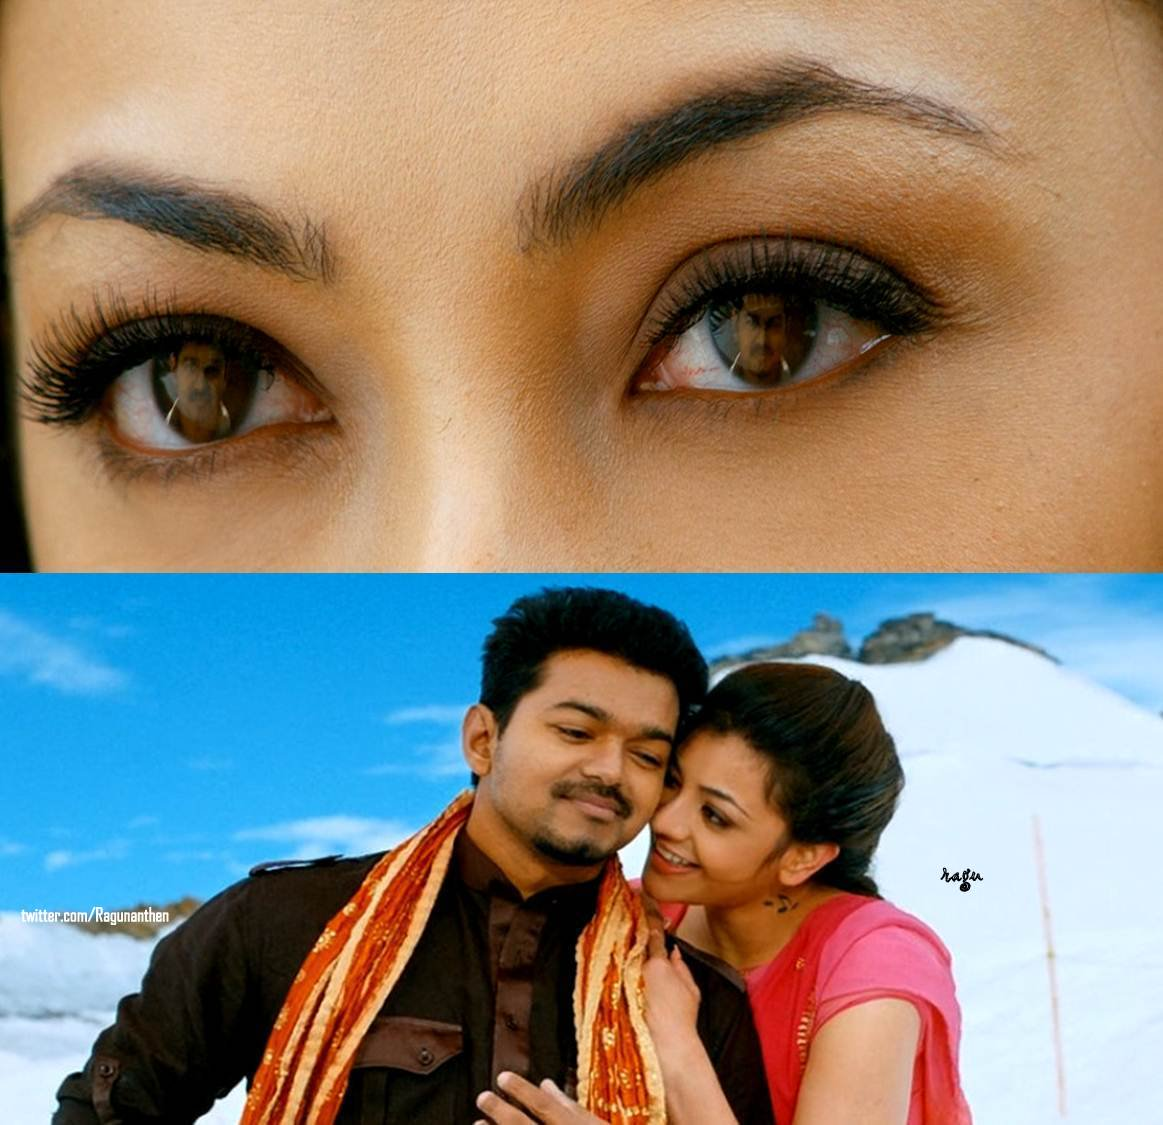 If you say my eyes are beautiful, its because they are looking at you  #Beautiful @MsKajalAggarwal  #Thuppaki #CutePair<br>http://pic.twitter.com/QcmcYCFIse